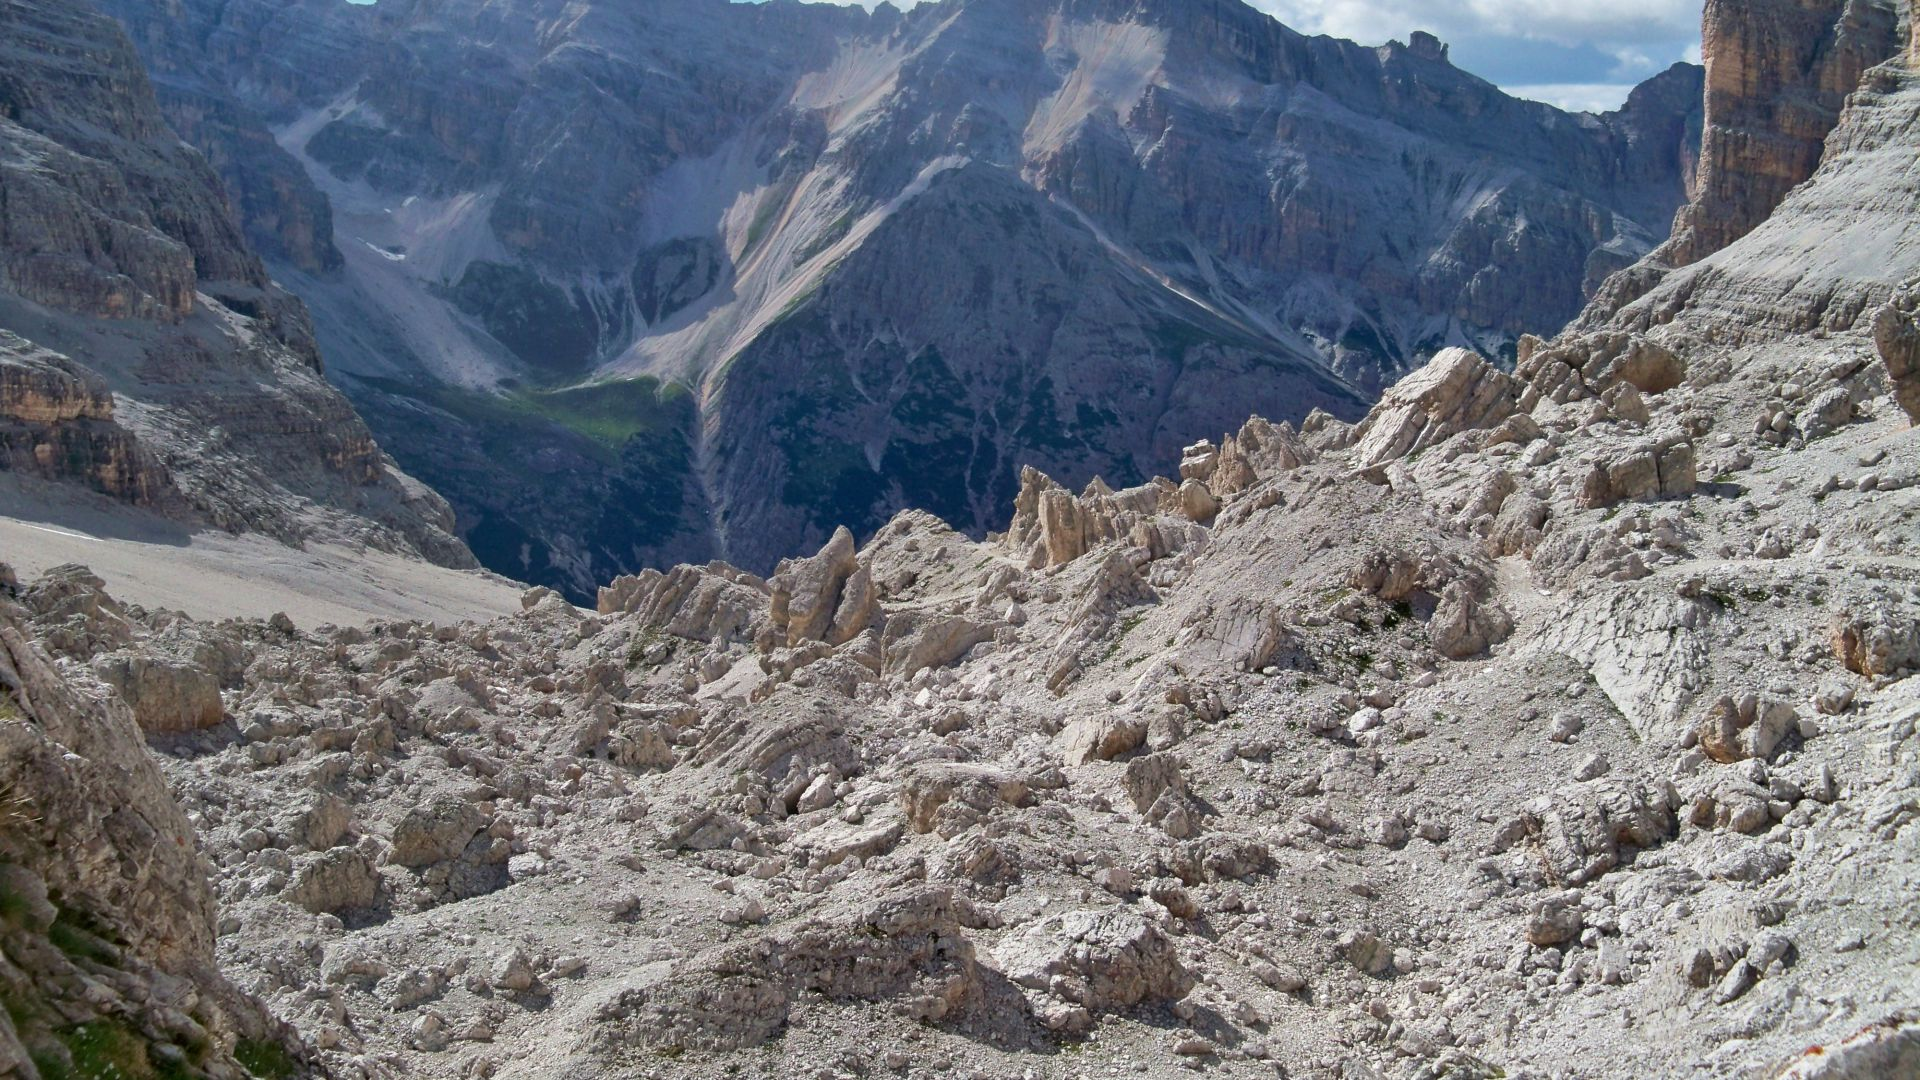 Image: Val Travenanzes